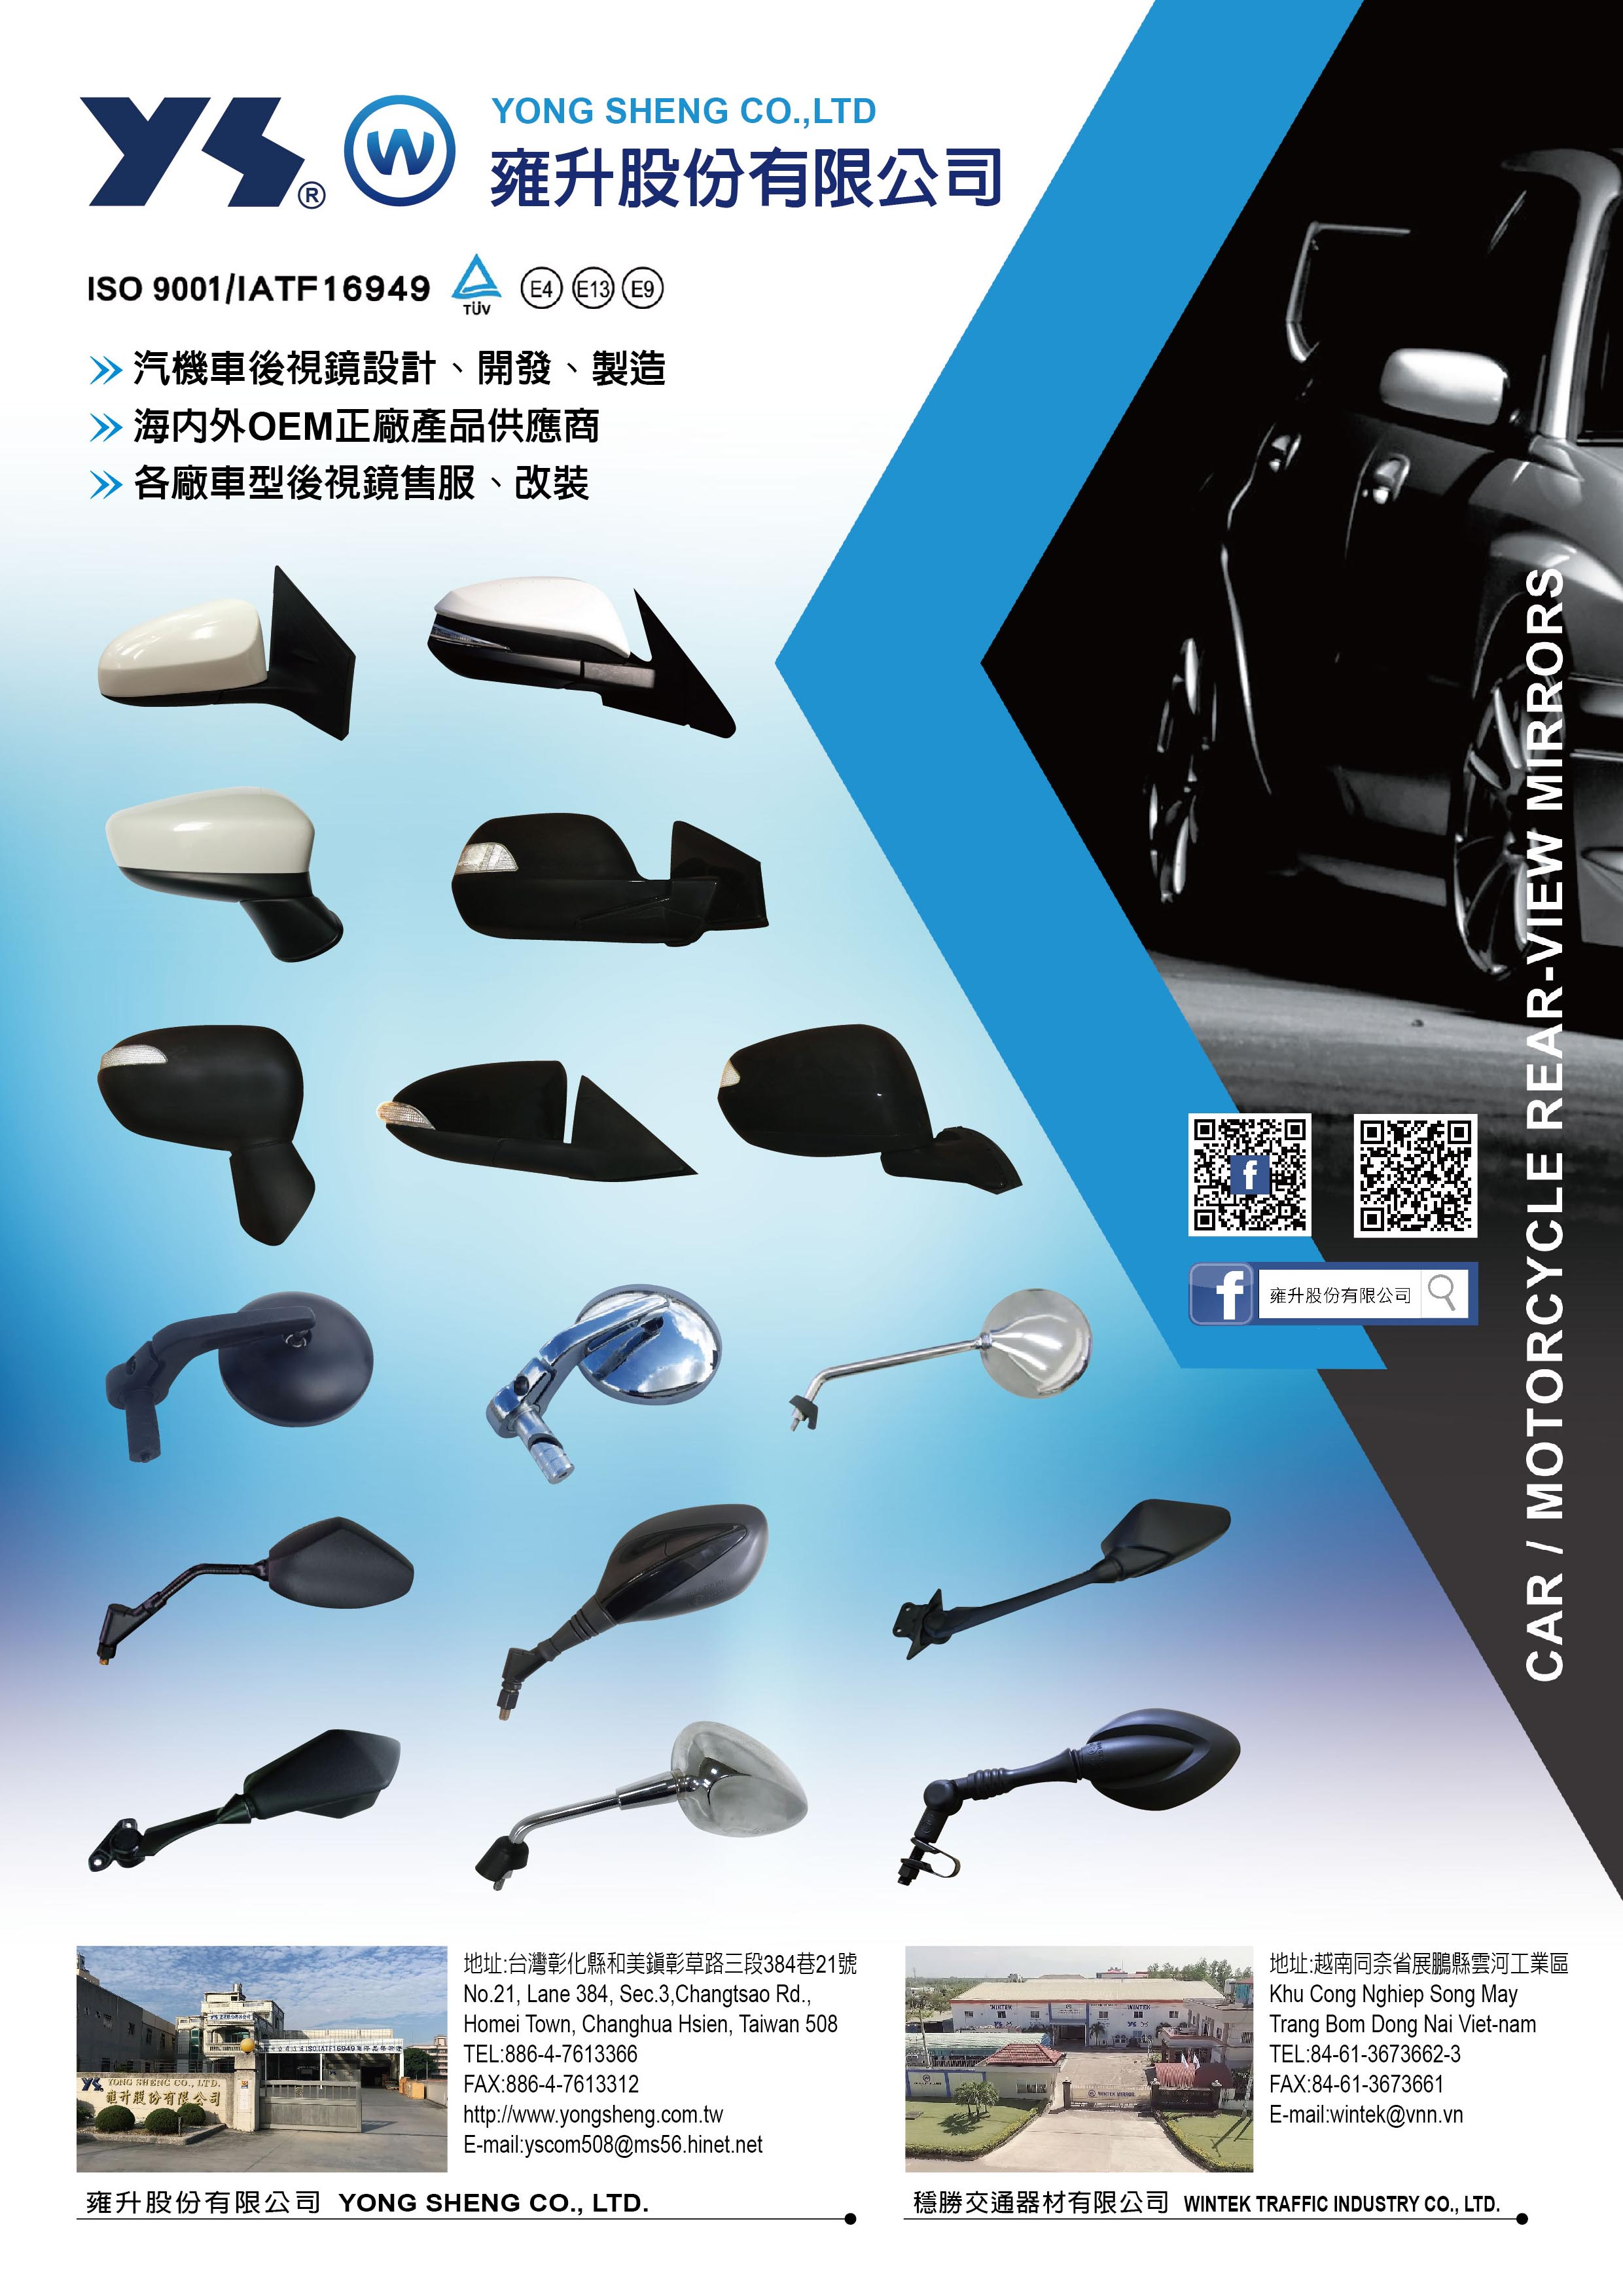 YONG SHENG CO., LTD.